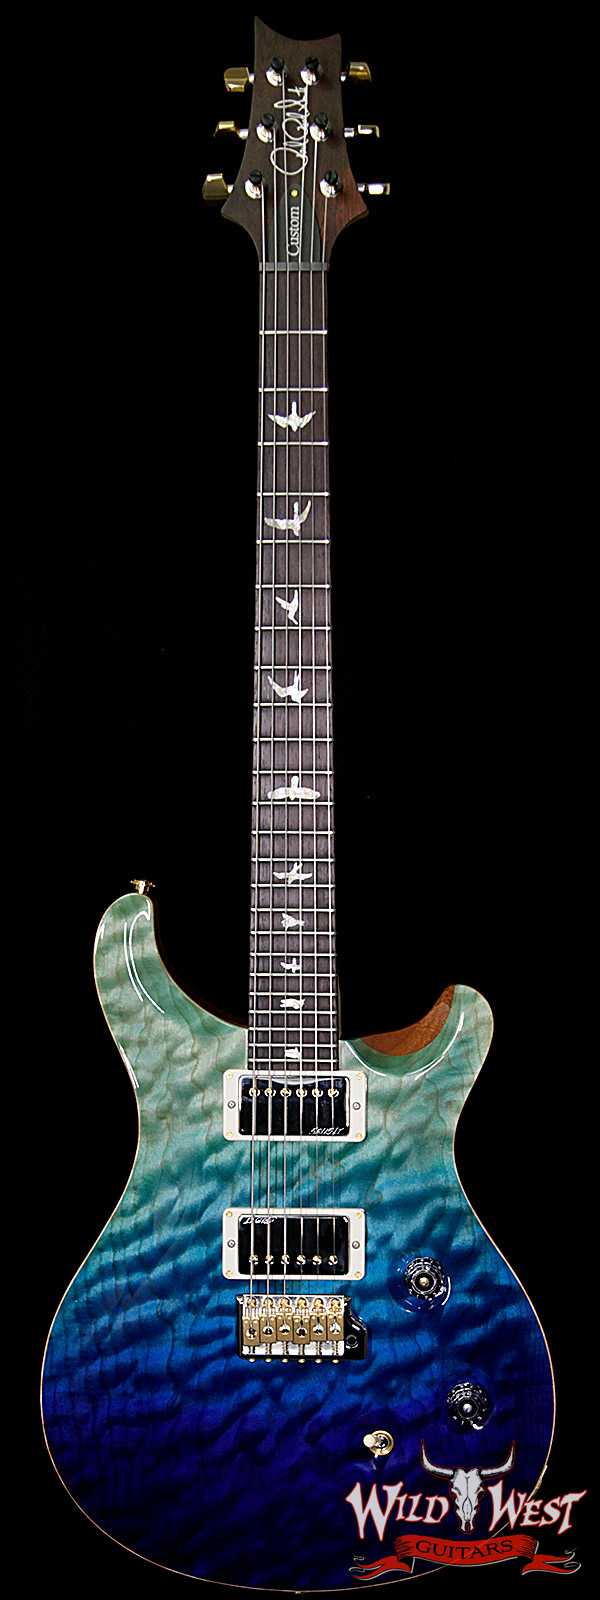 PRS Wood Library 10 Top Custom 24 Fatback Quilt Top Birdseye Neck Brazilian Rosewood Board Blue Fade